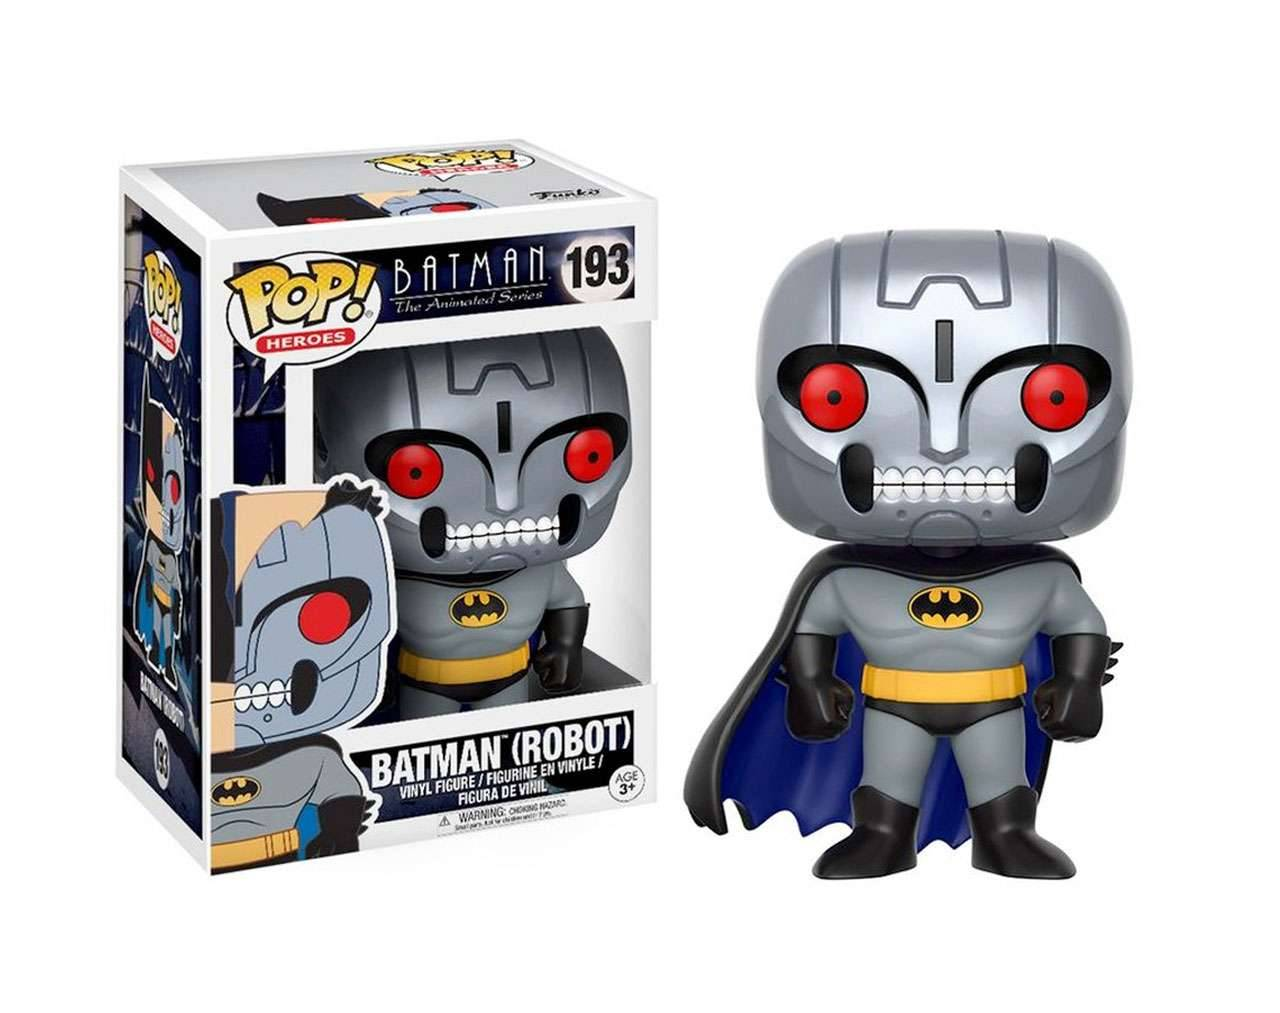 Batman Robot Animated Series (Edición Chase) Pop! Vinyl